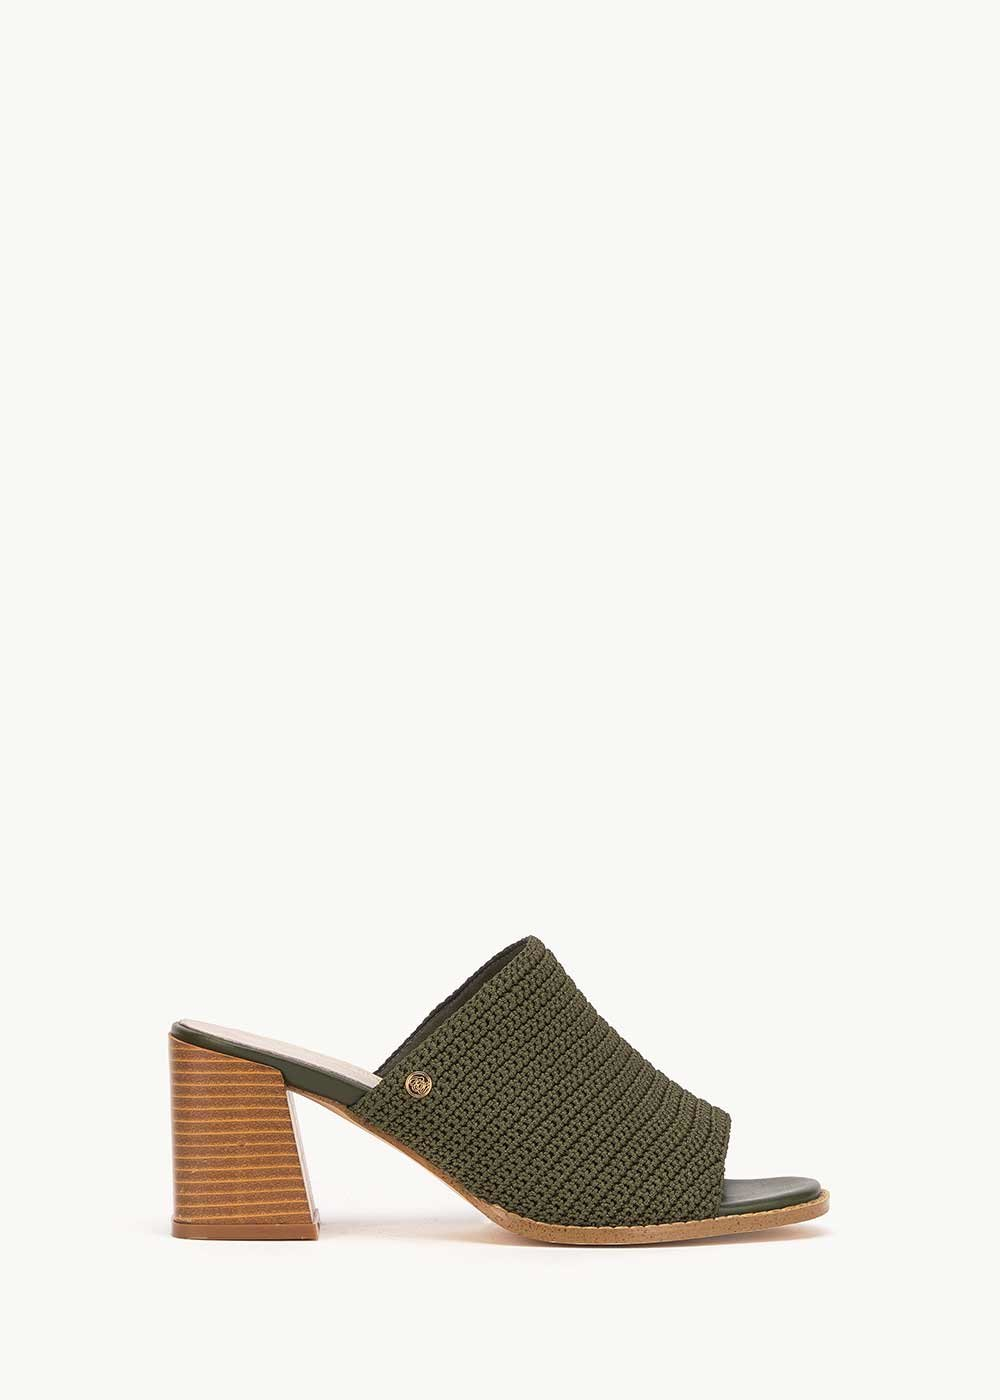 Sherry mules with rhinestones - Green - Woman